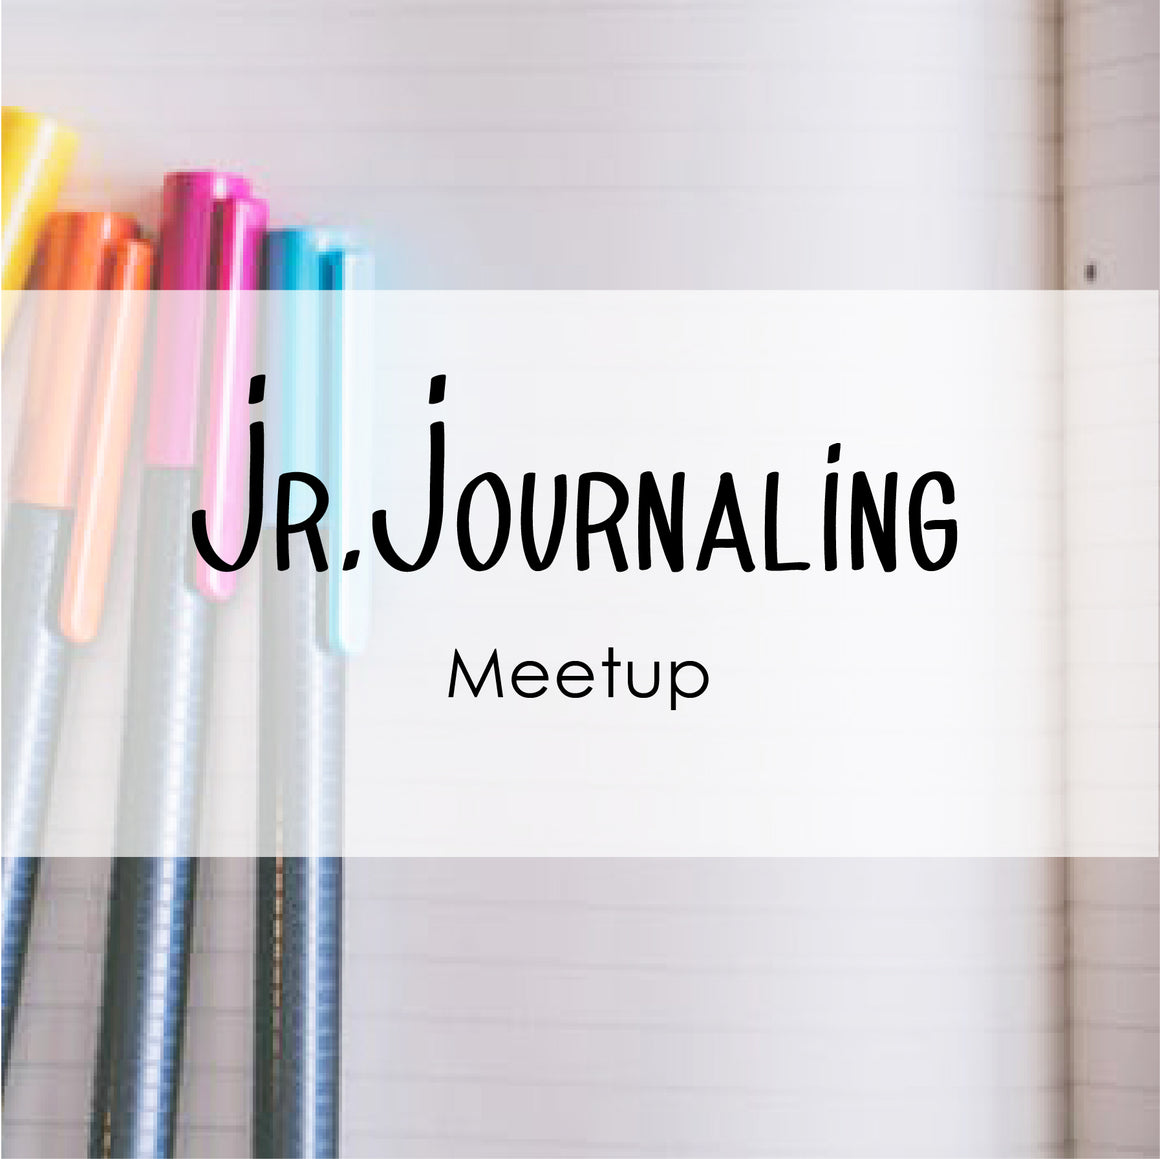 Jr. Journaling Club Meetup Workshop